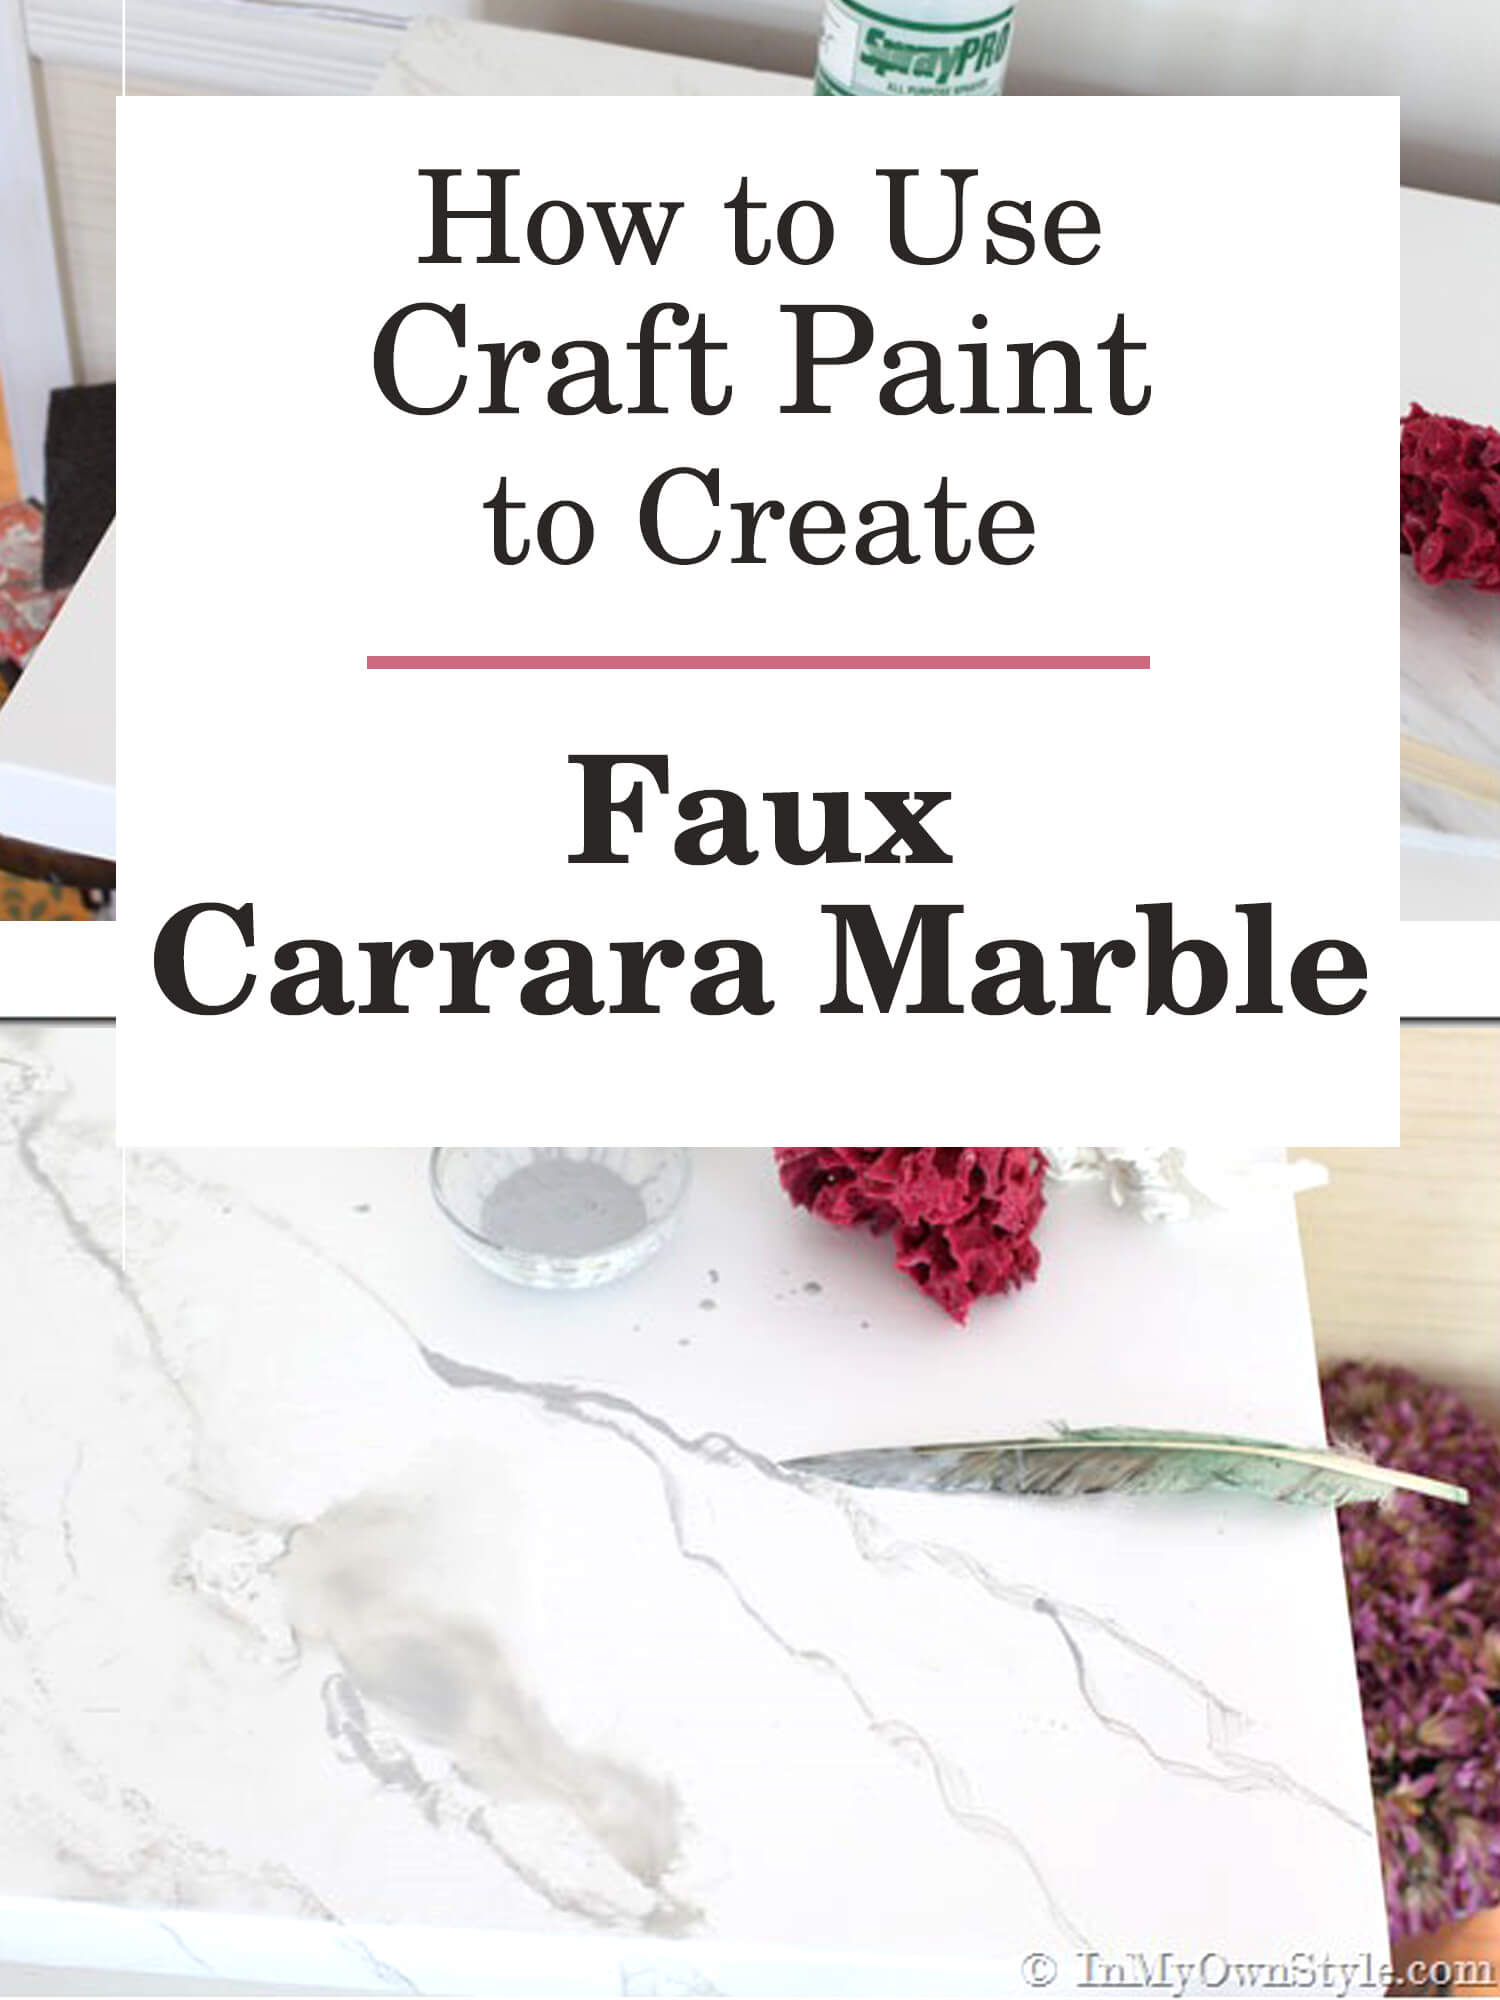 How to use craft paint to create faux Carrara Marble